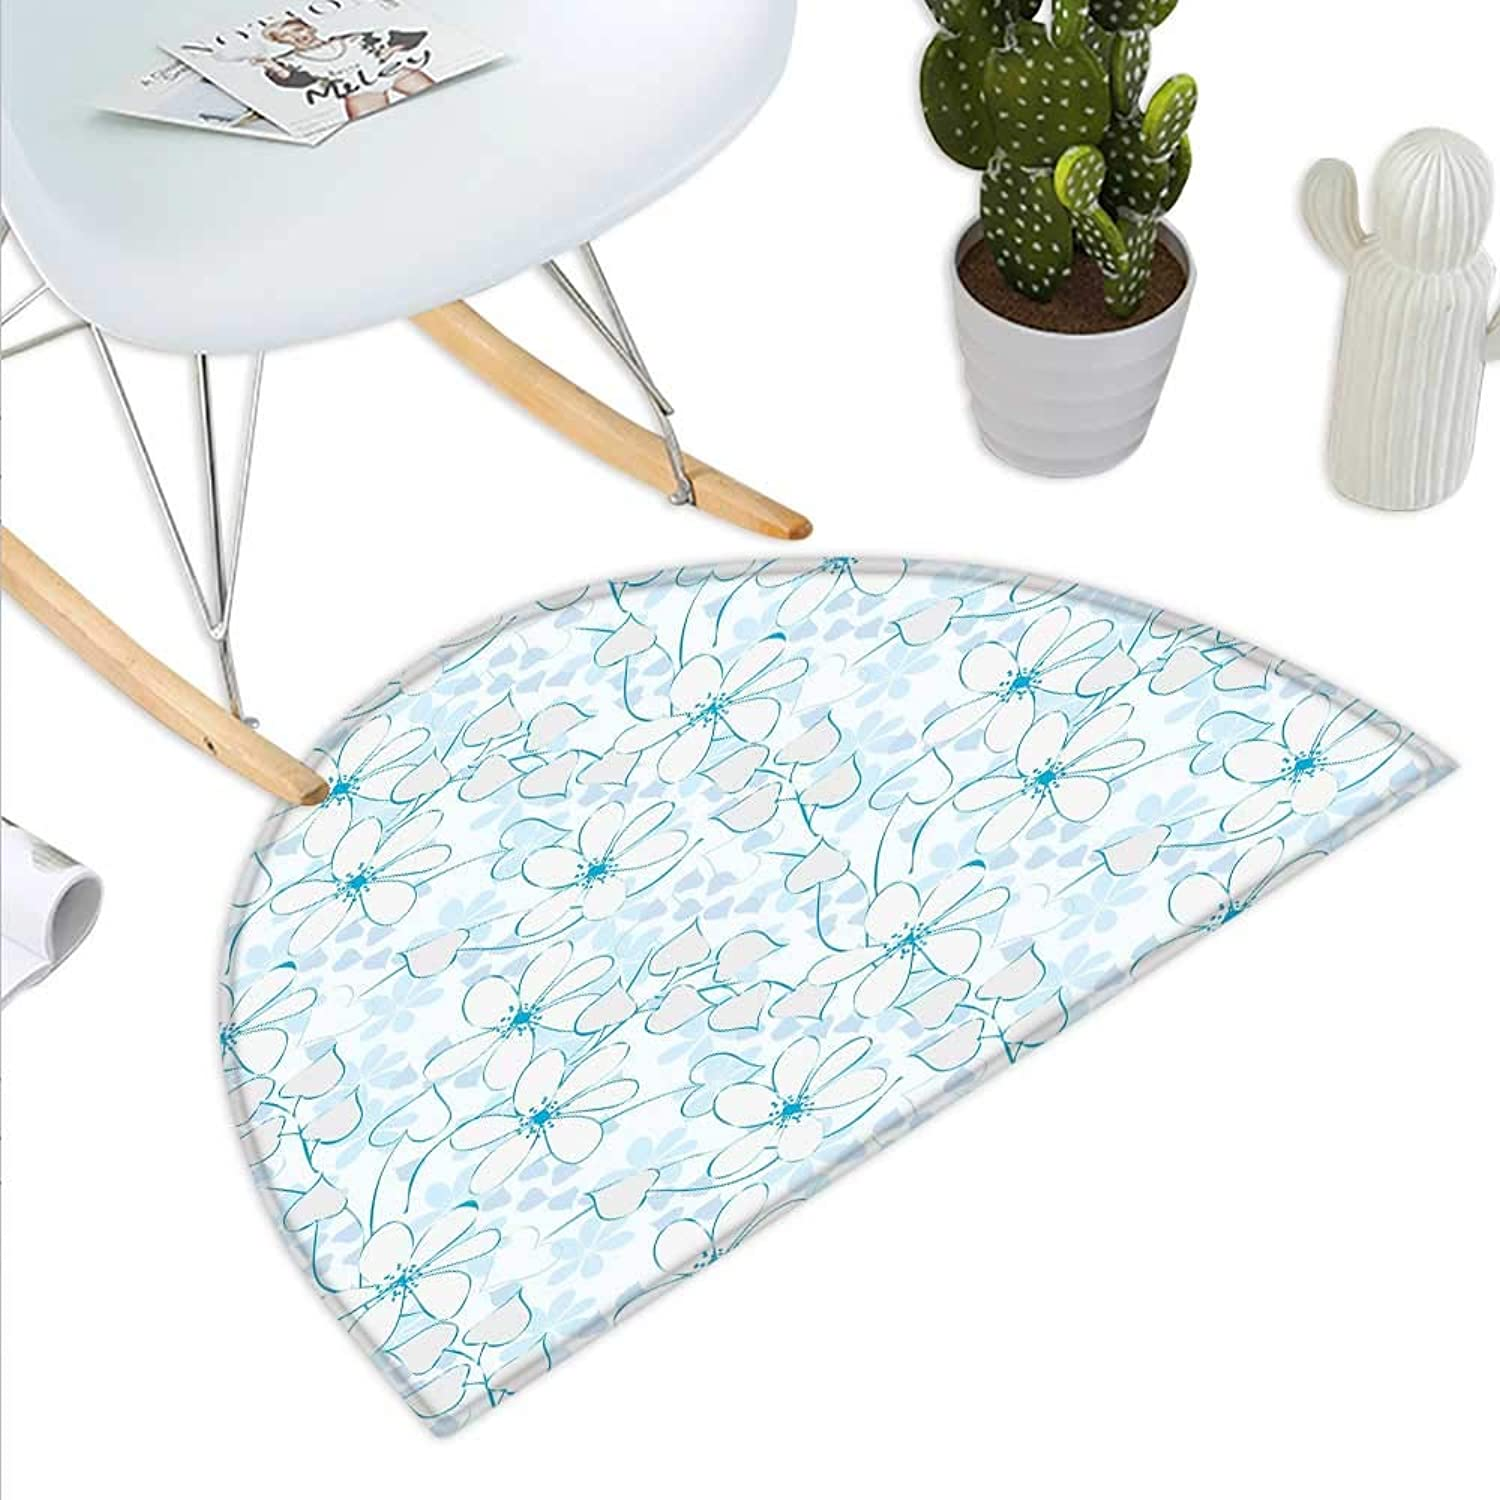 bluee Semicircle Doormat Abstract Flowers with Heart Shaped Leaves Romantic Fresh Beauty in Nature Halfmoon doormats H 43.3  xD 64.9  Pale bluee Aqua White